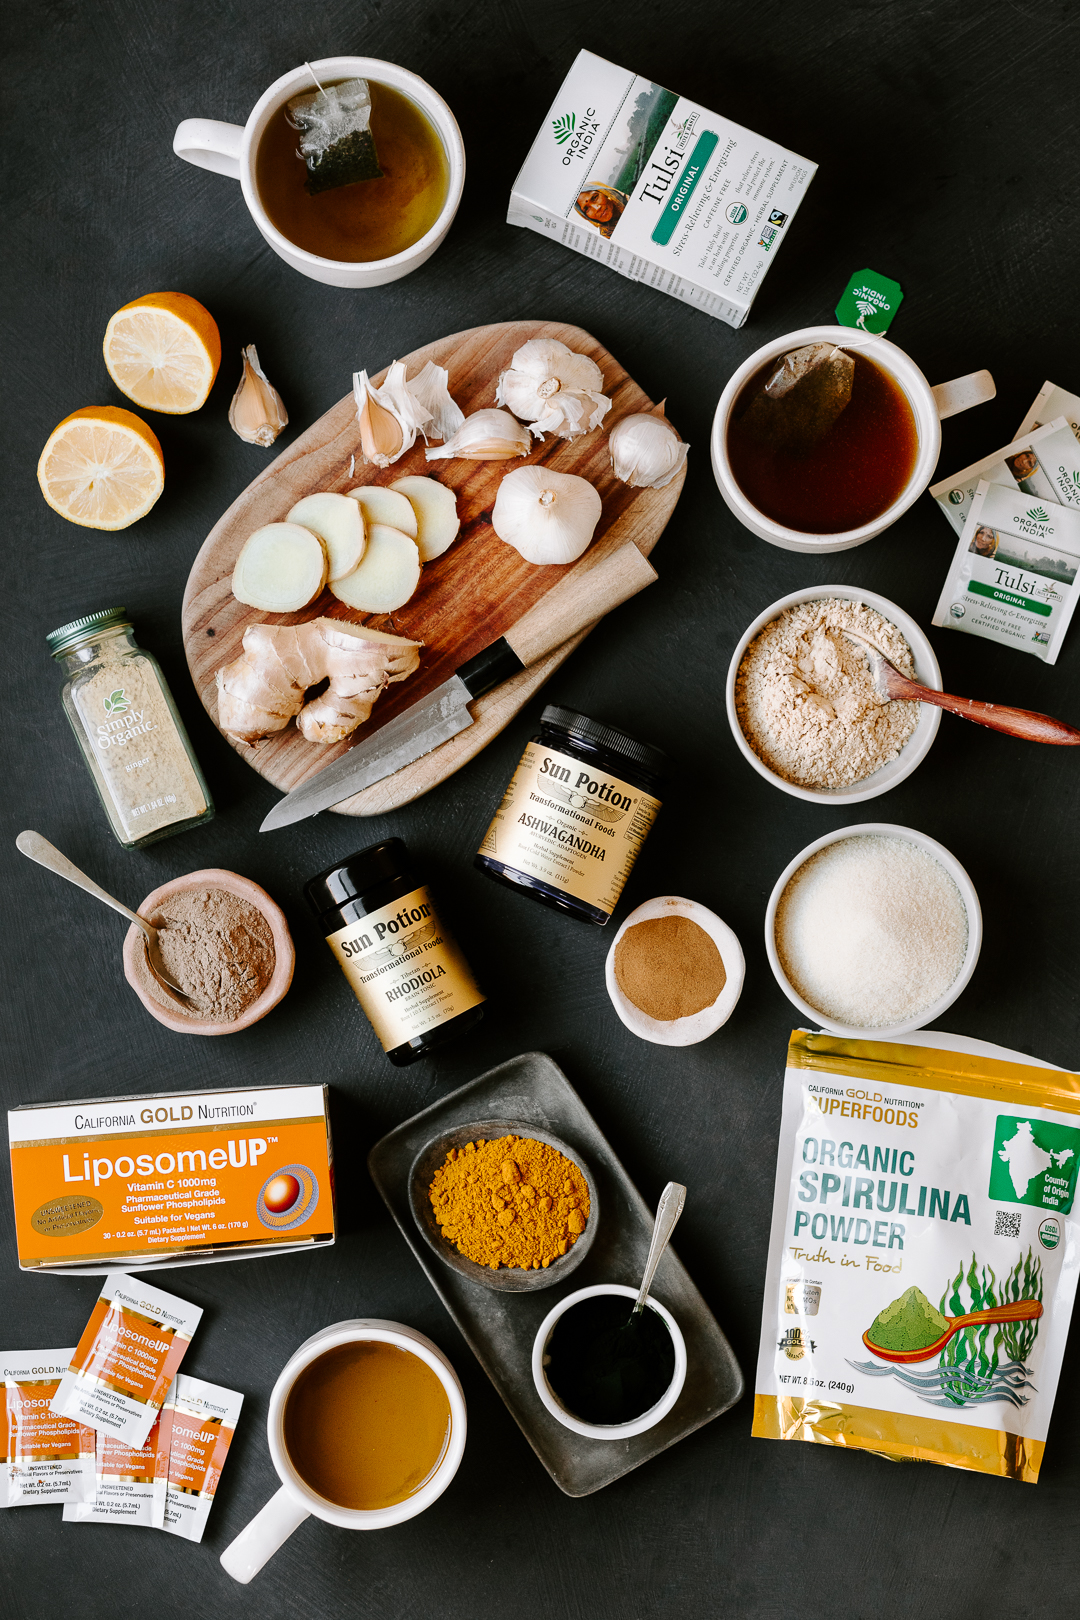 How_To_Boost_Your_Immune_Health_with_10_Products_From_iHerb_by_Jordan_Pie_Nutritionist_Photographer-1.jpg